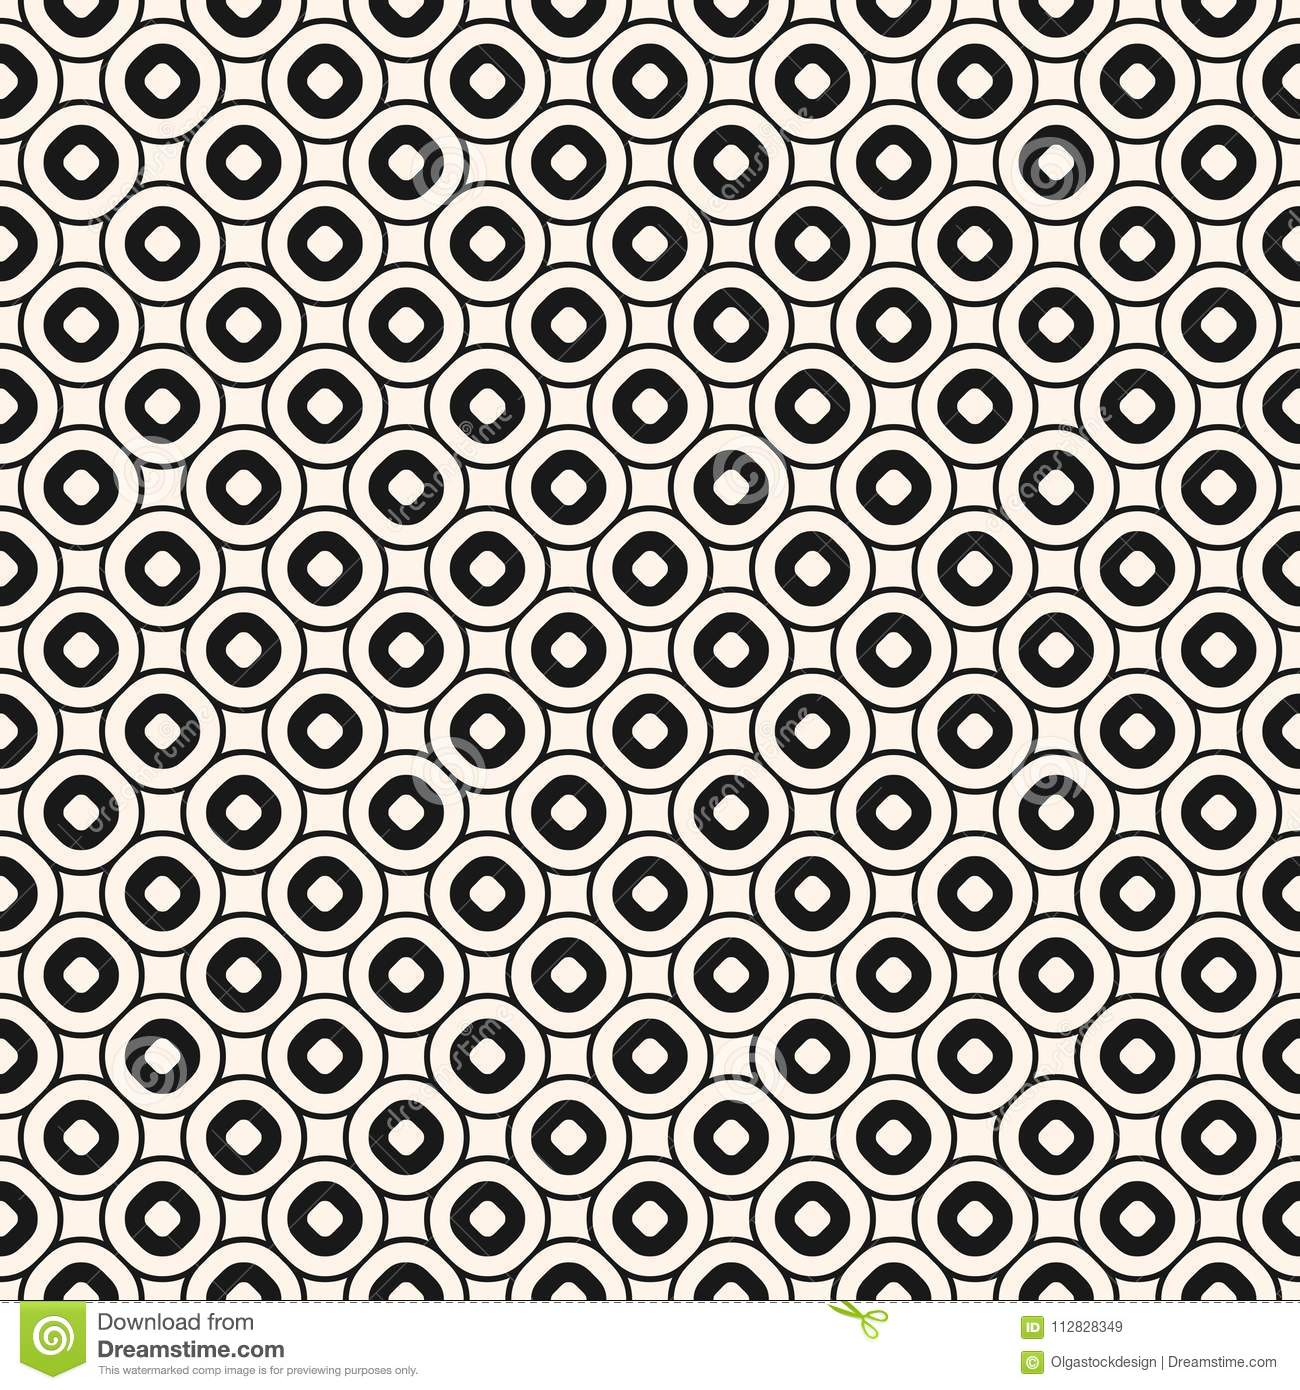 vector geometric seamless pattern with circles, rings. retro vintage